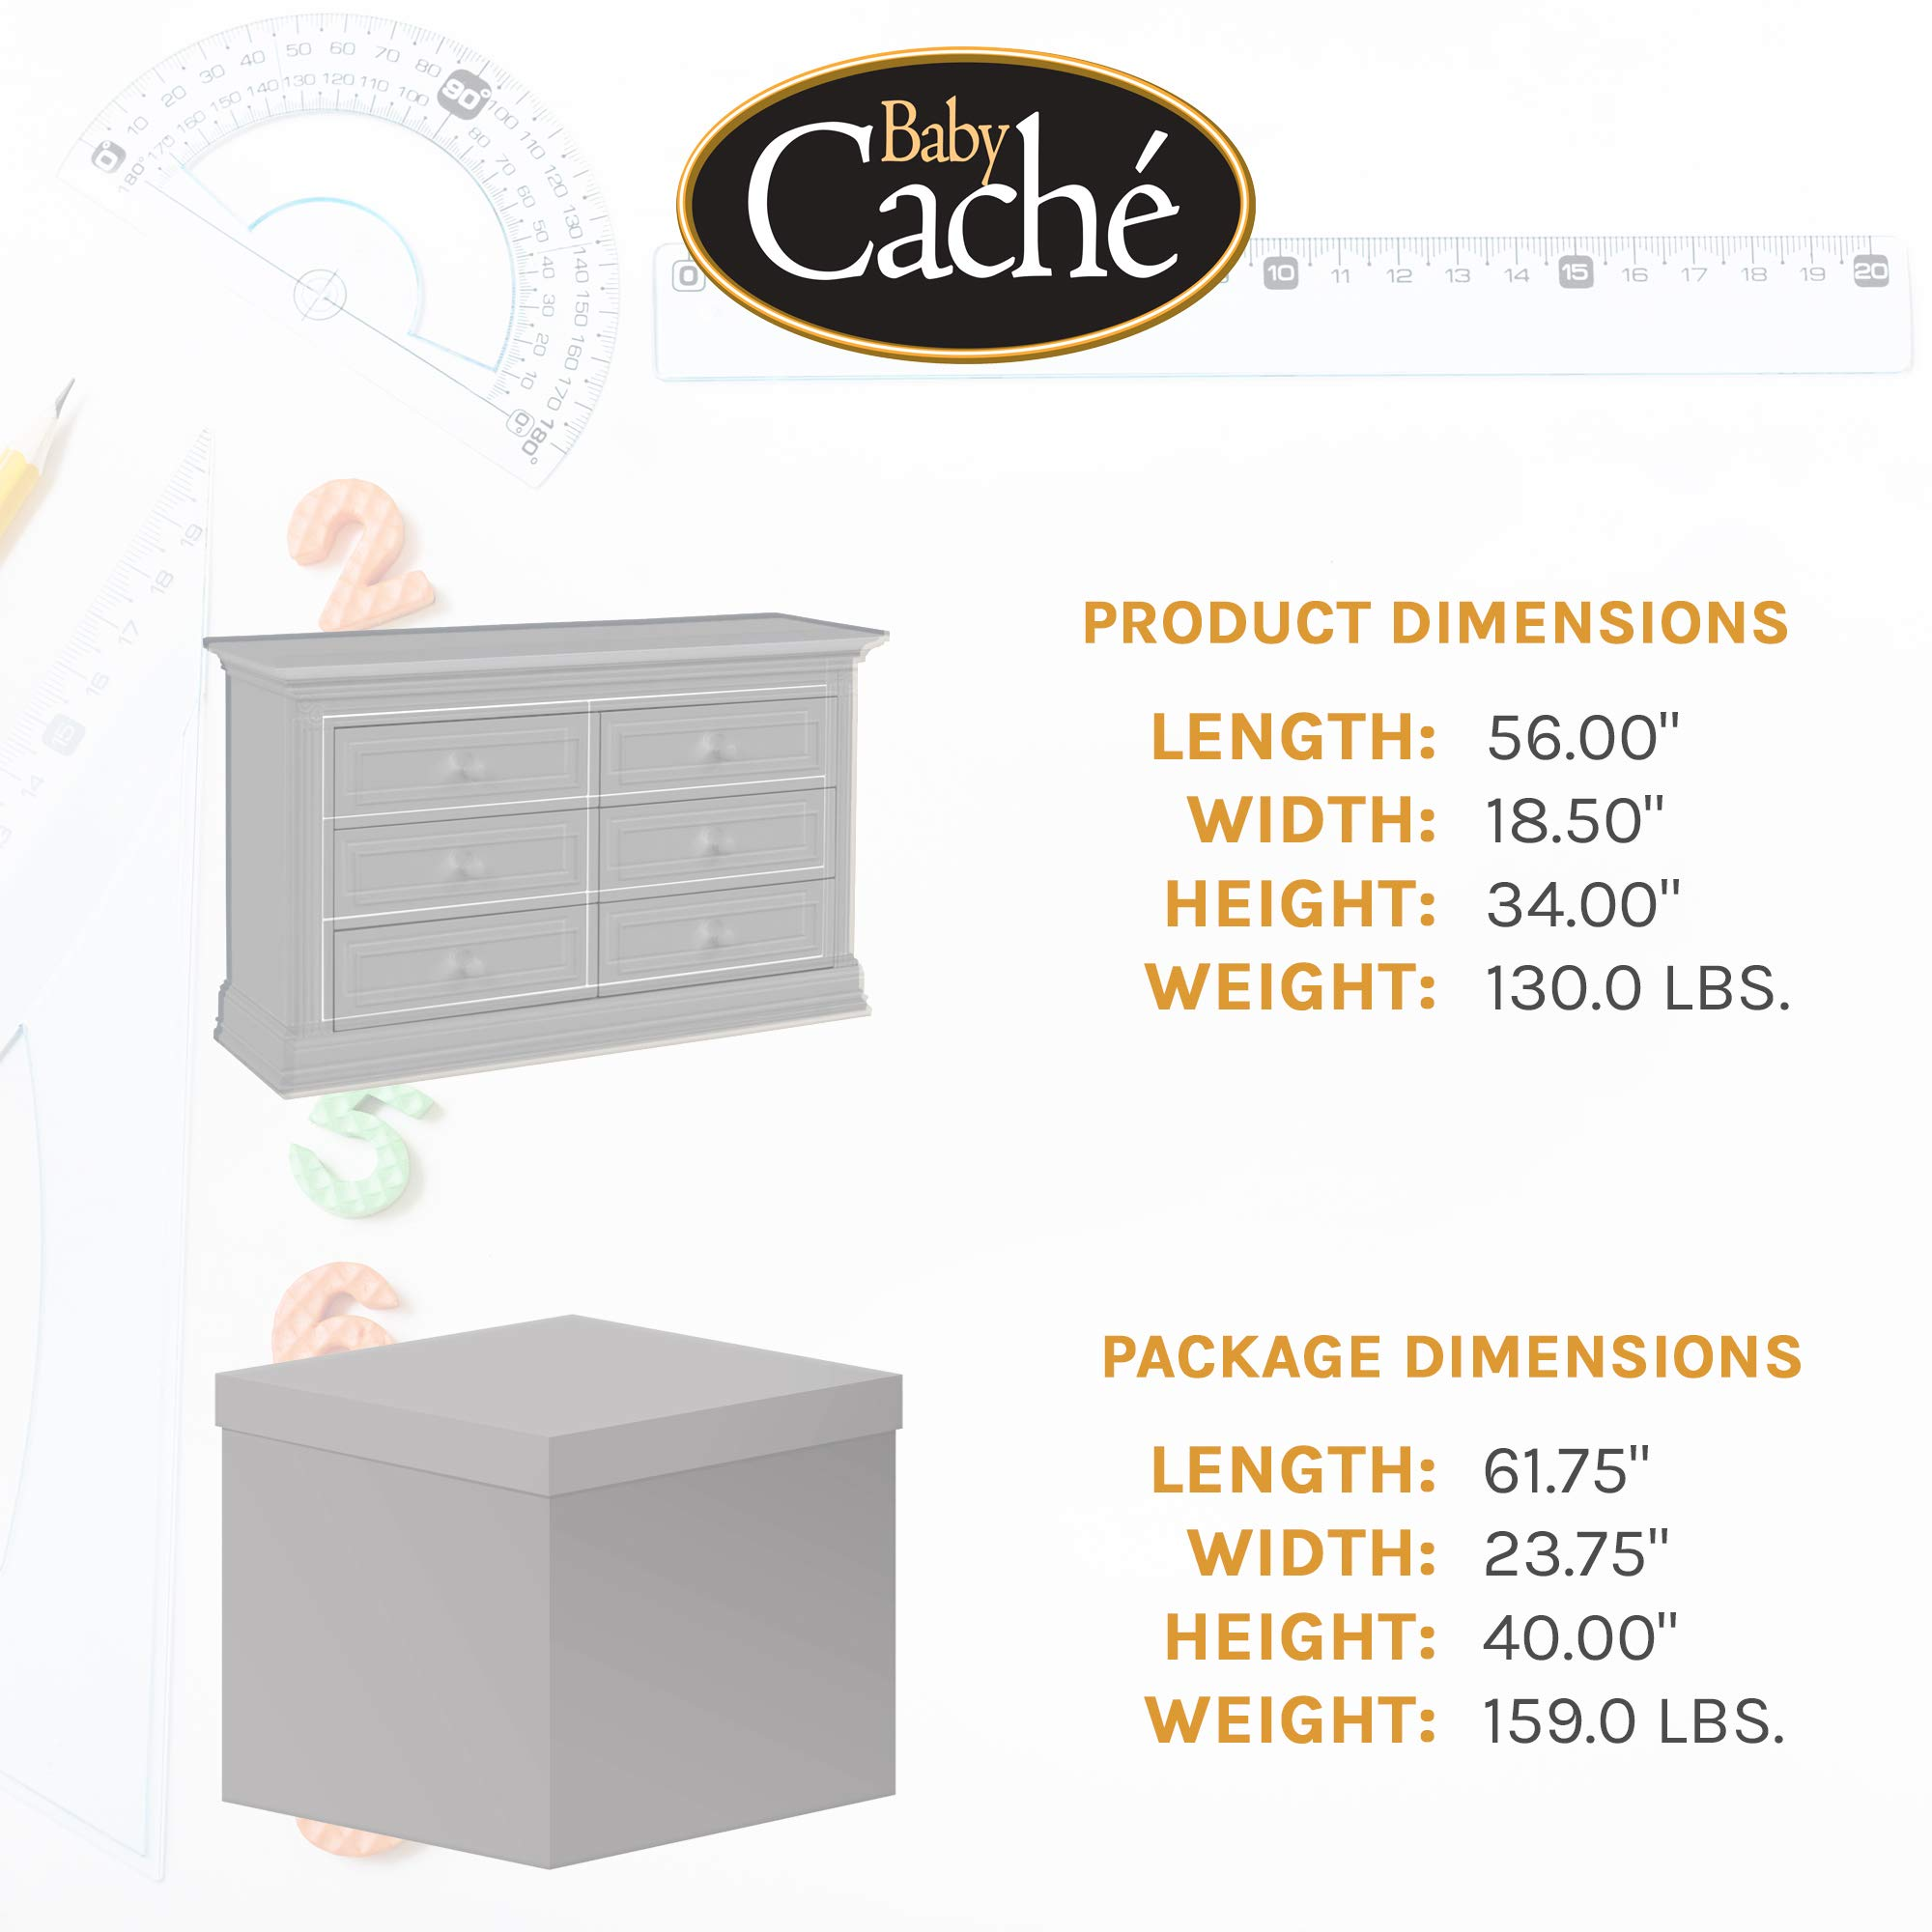 Baby Cache Montana Collection Natural Hardwood 6 Drawer Dresser | Lasting Quality & Design | Kiln-dried & Hand-Crafted Construction | 56'' x 18.5'' x 34'', Glazed White by Baby Cache (Image #6)